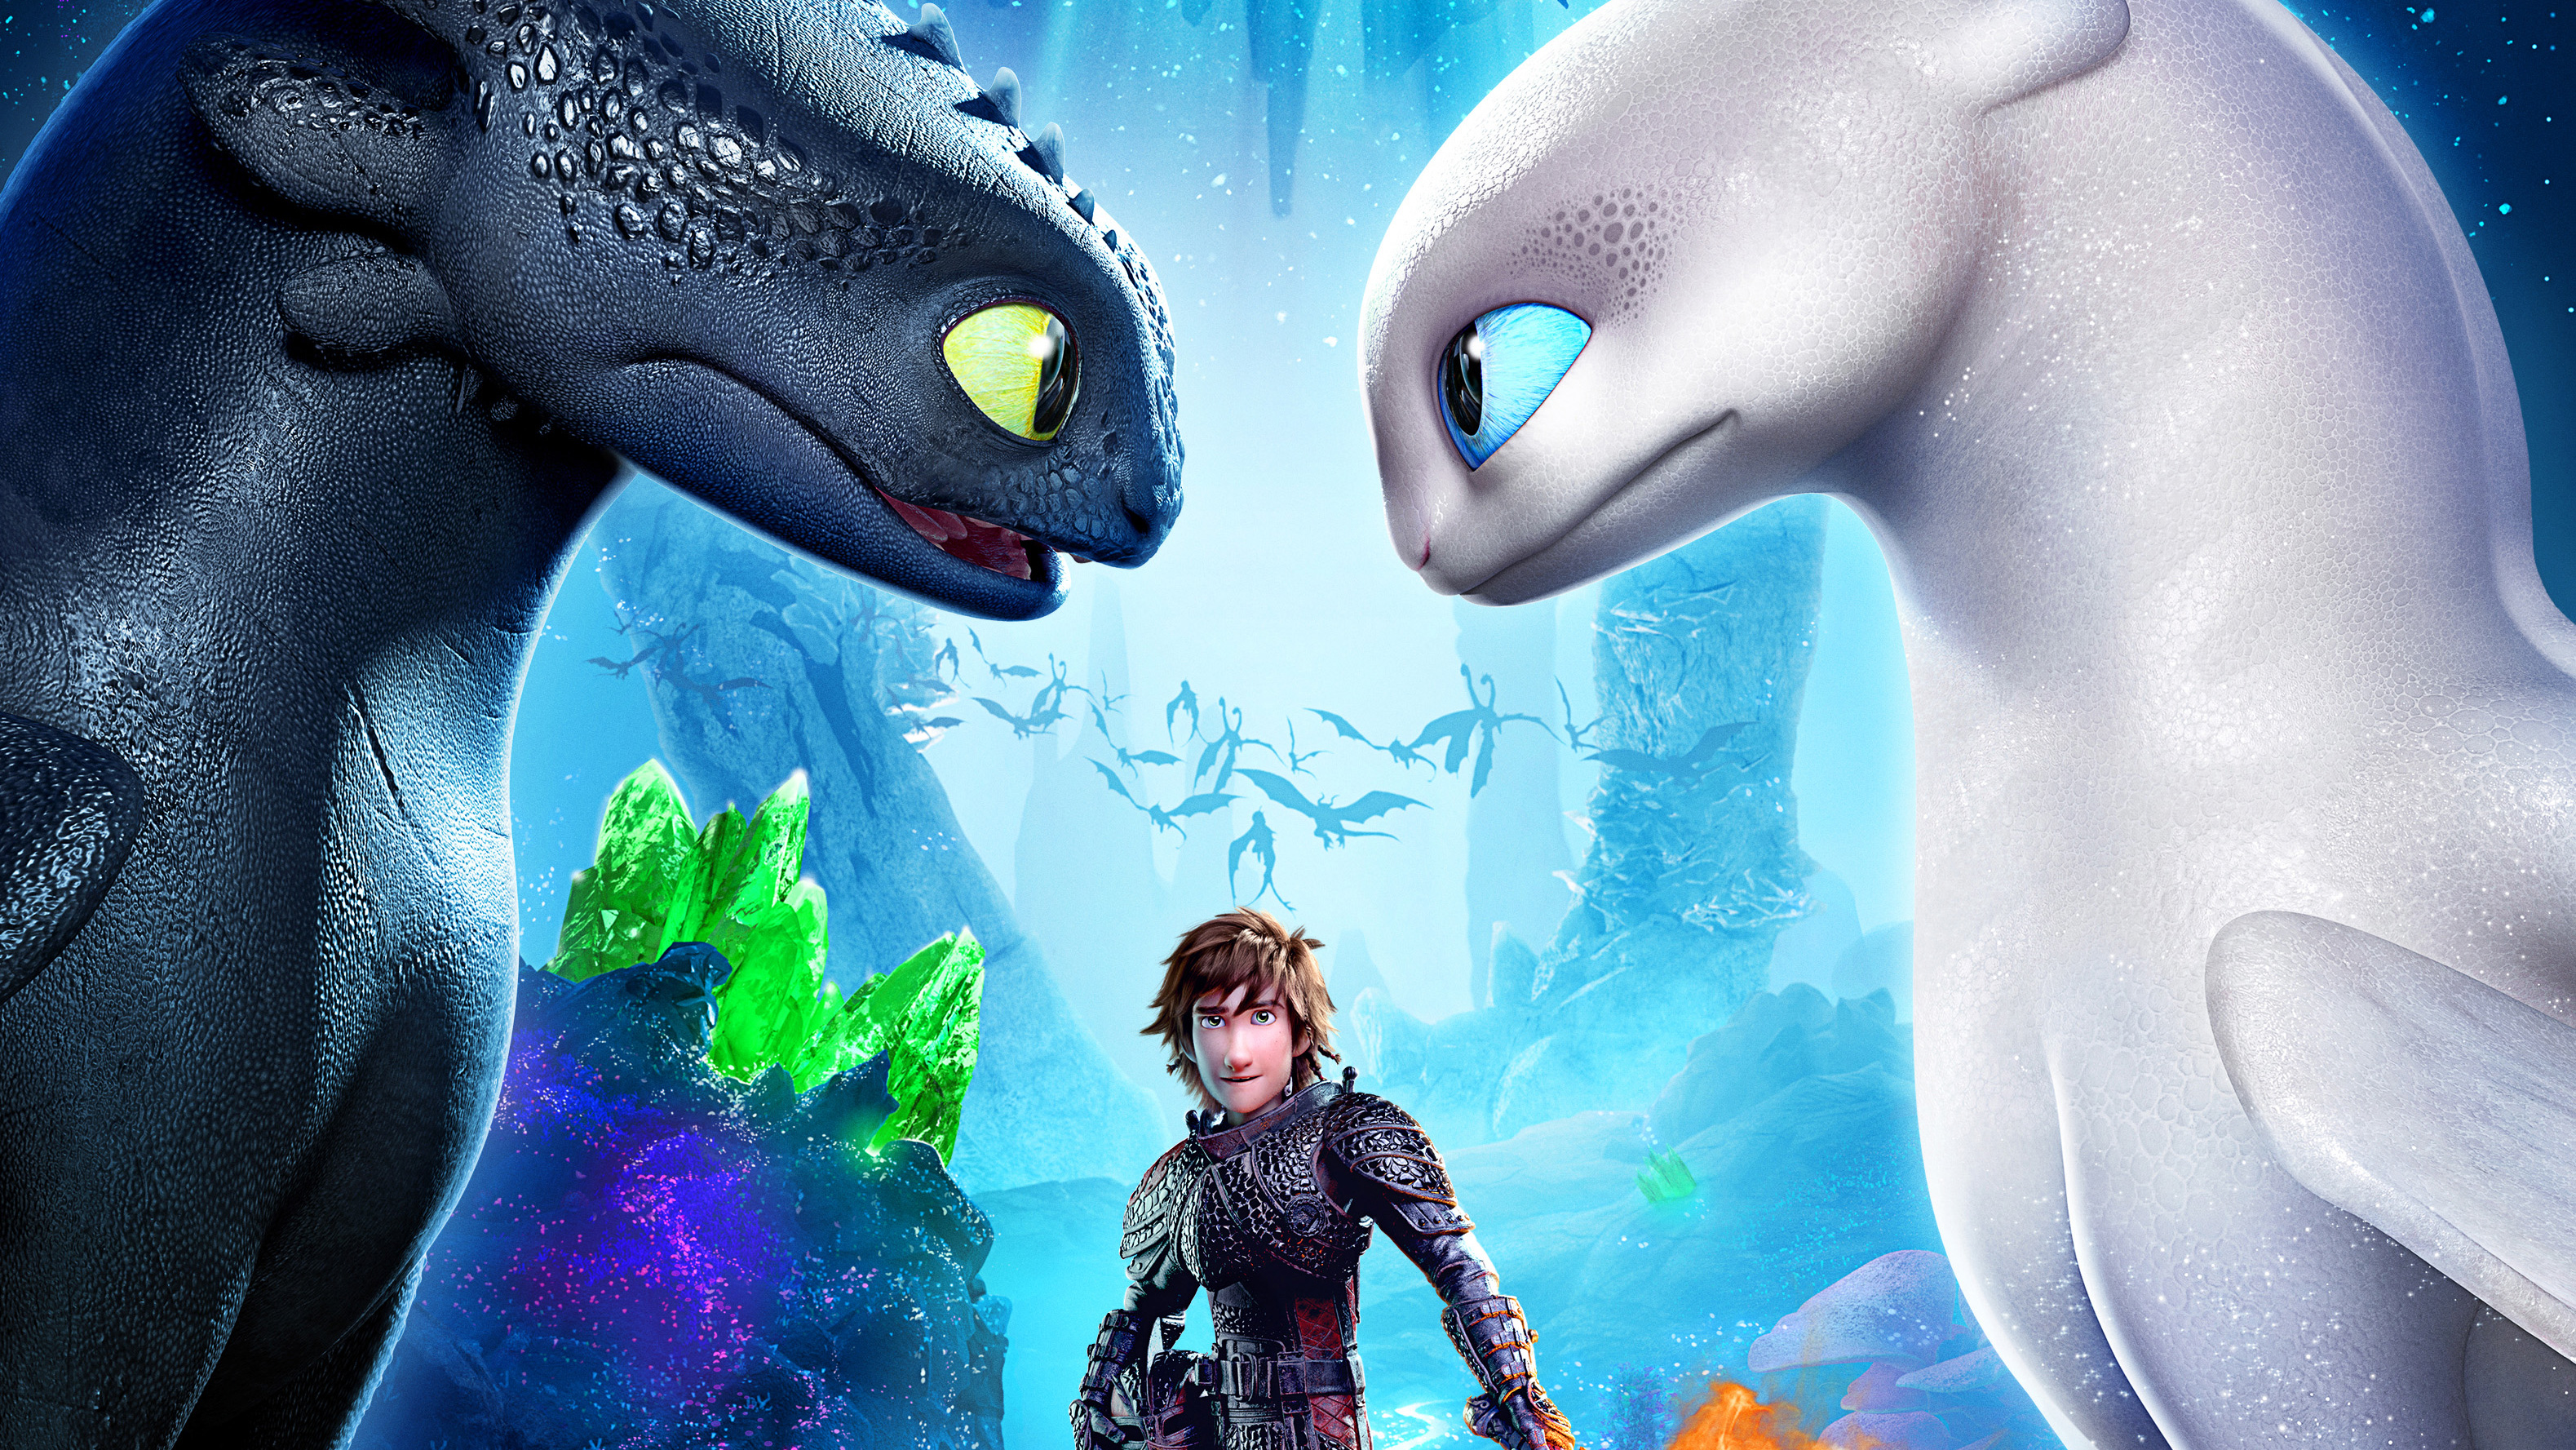 How To Train Your Dragon The Hidden World Movie Poster Hd